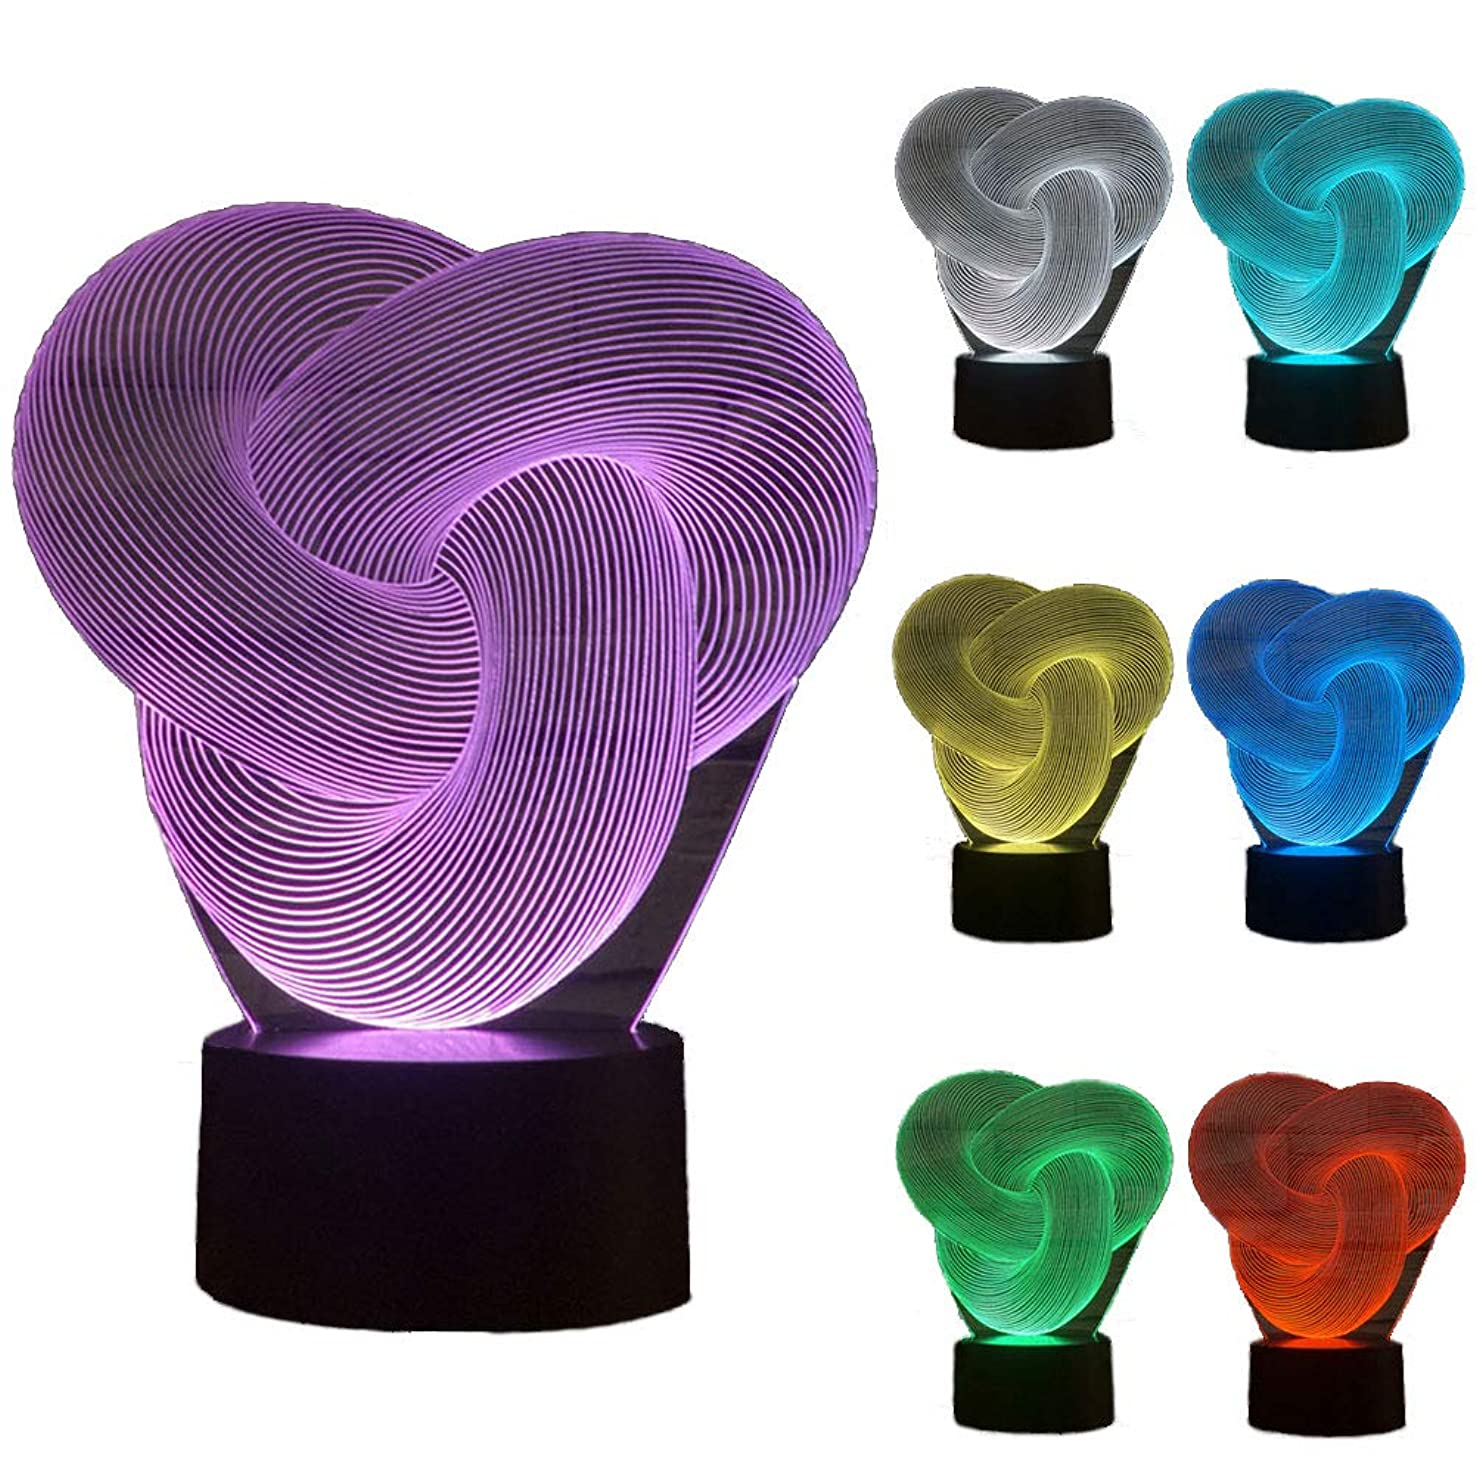 ZLTFashion 3D Visual Optical Illusion Colorful LED Table Lamp Touch Cool Design Night Light Christmas Prank Gifts Romantic Holiday Creative Gadget (Rope)